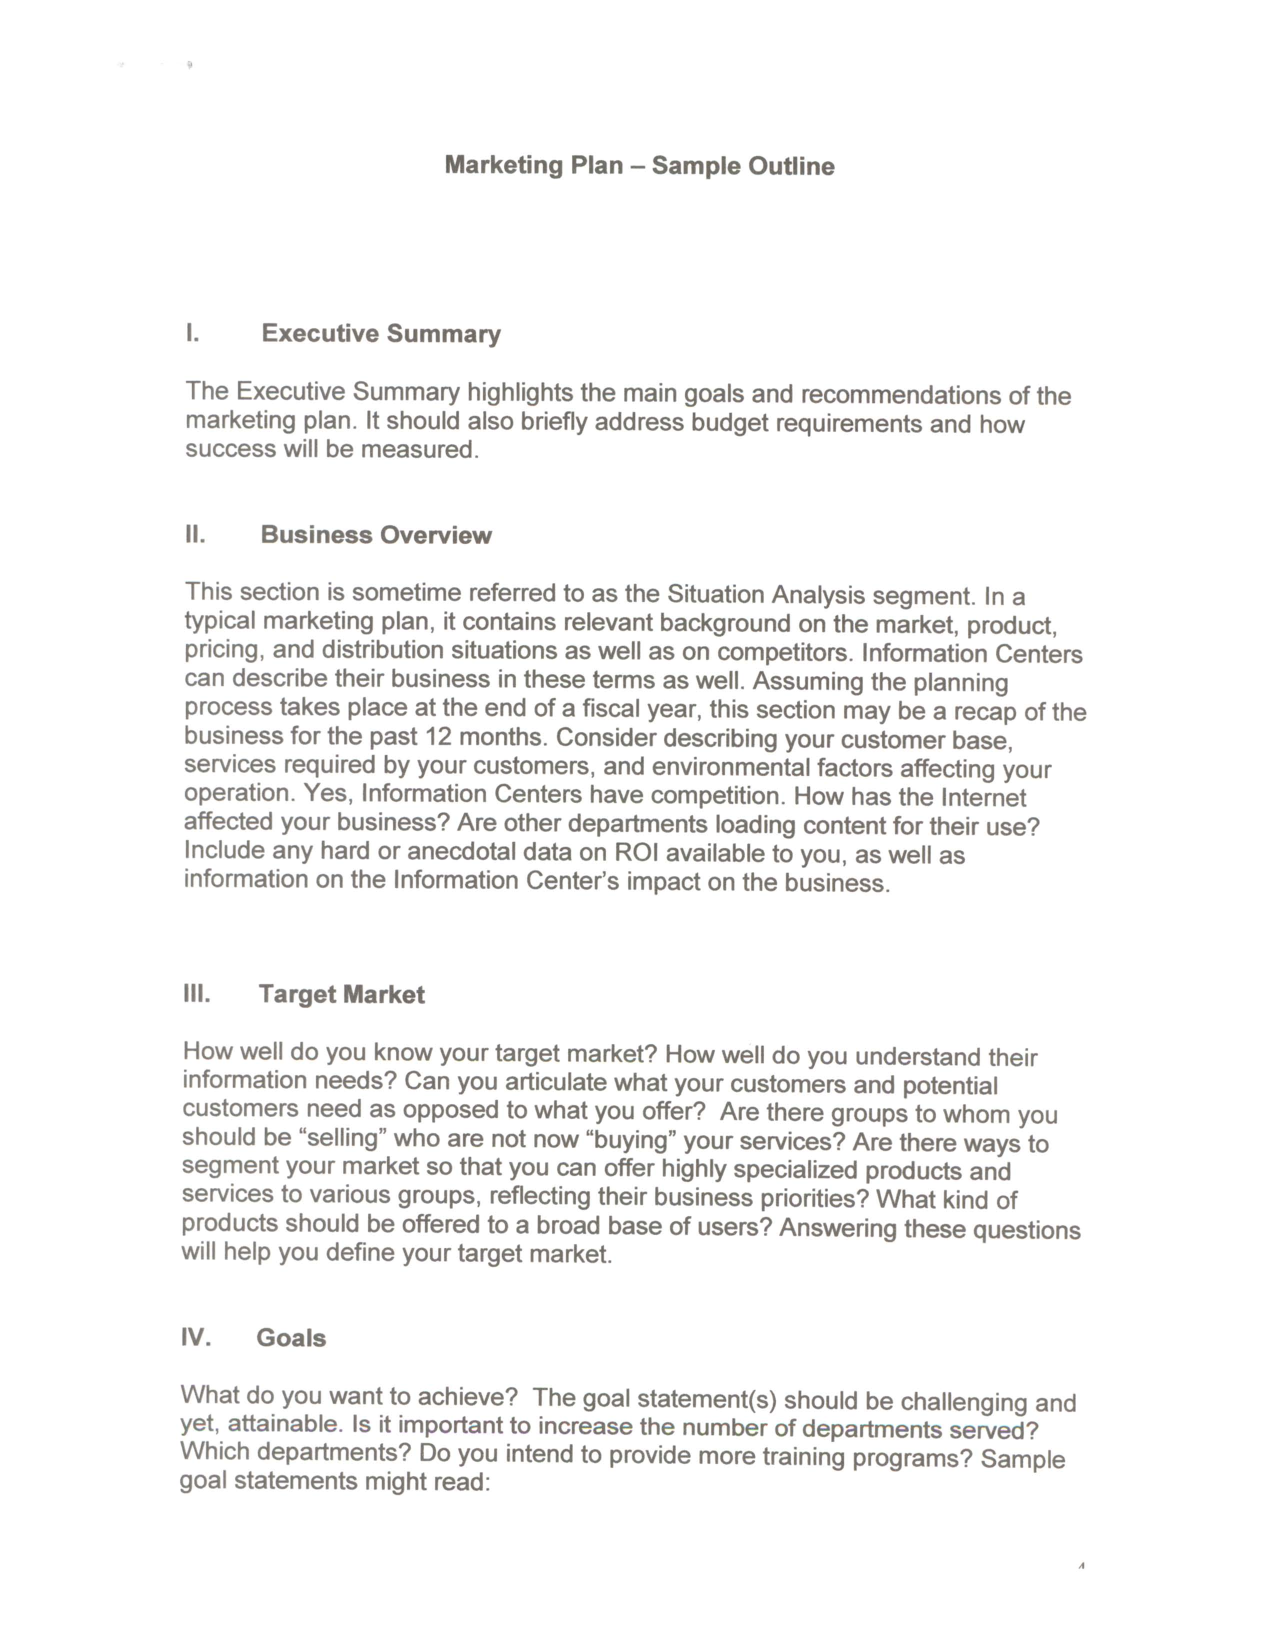 005 Executive Summary Research Paper Format Marketing Plan Example 384040 Imposing Apa Full